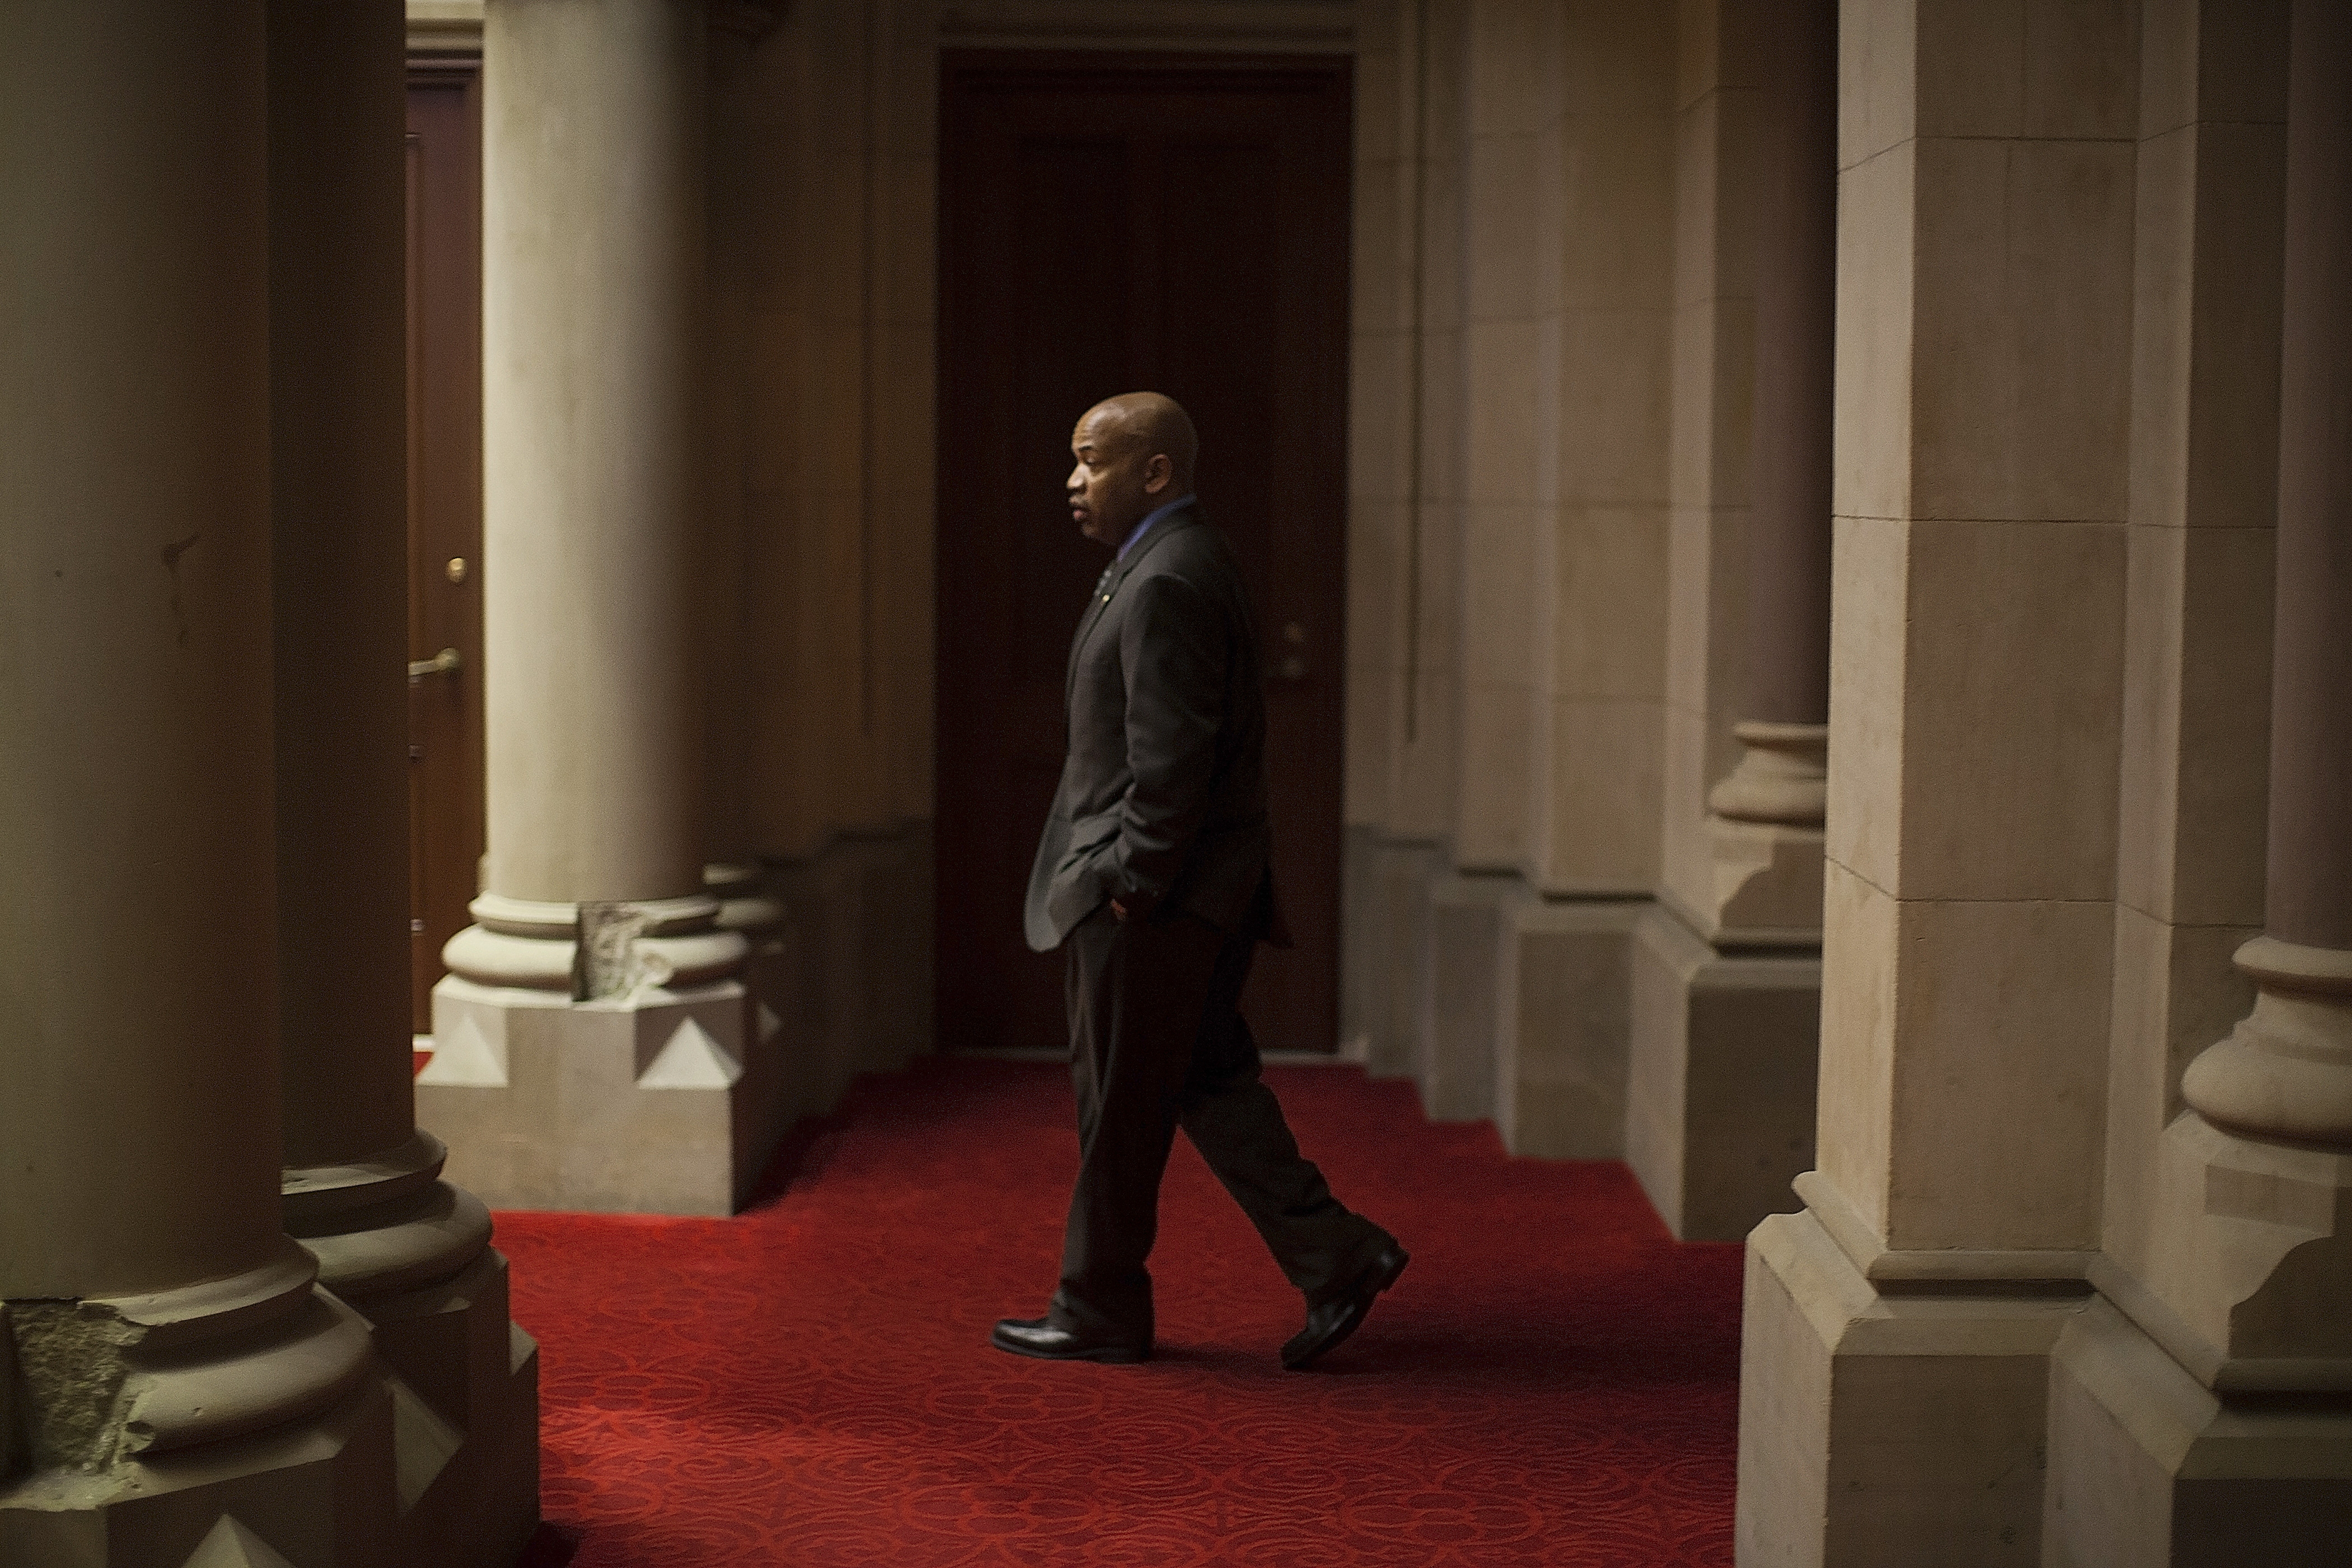 Assembly Speaker Carl E. Heastie has demonstrated a disregard for ethical standards in a State Legislature noted for an inability to police itself.